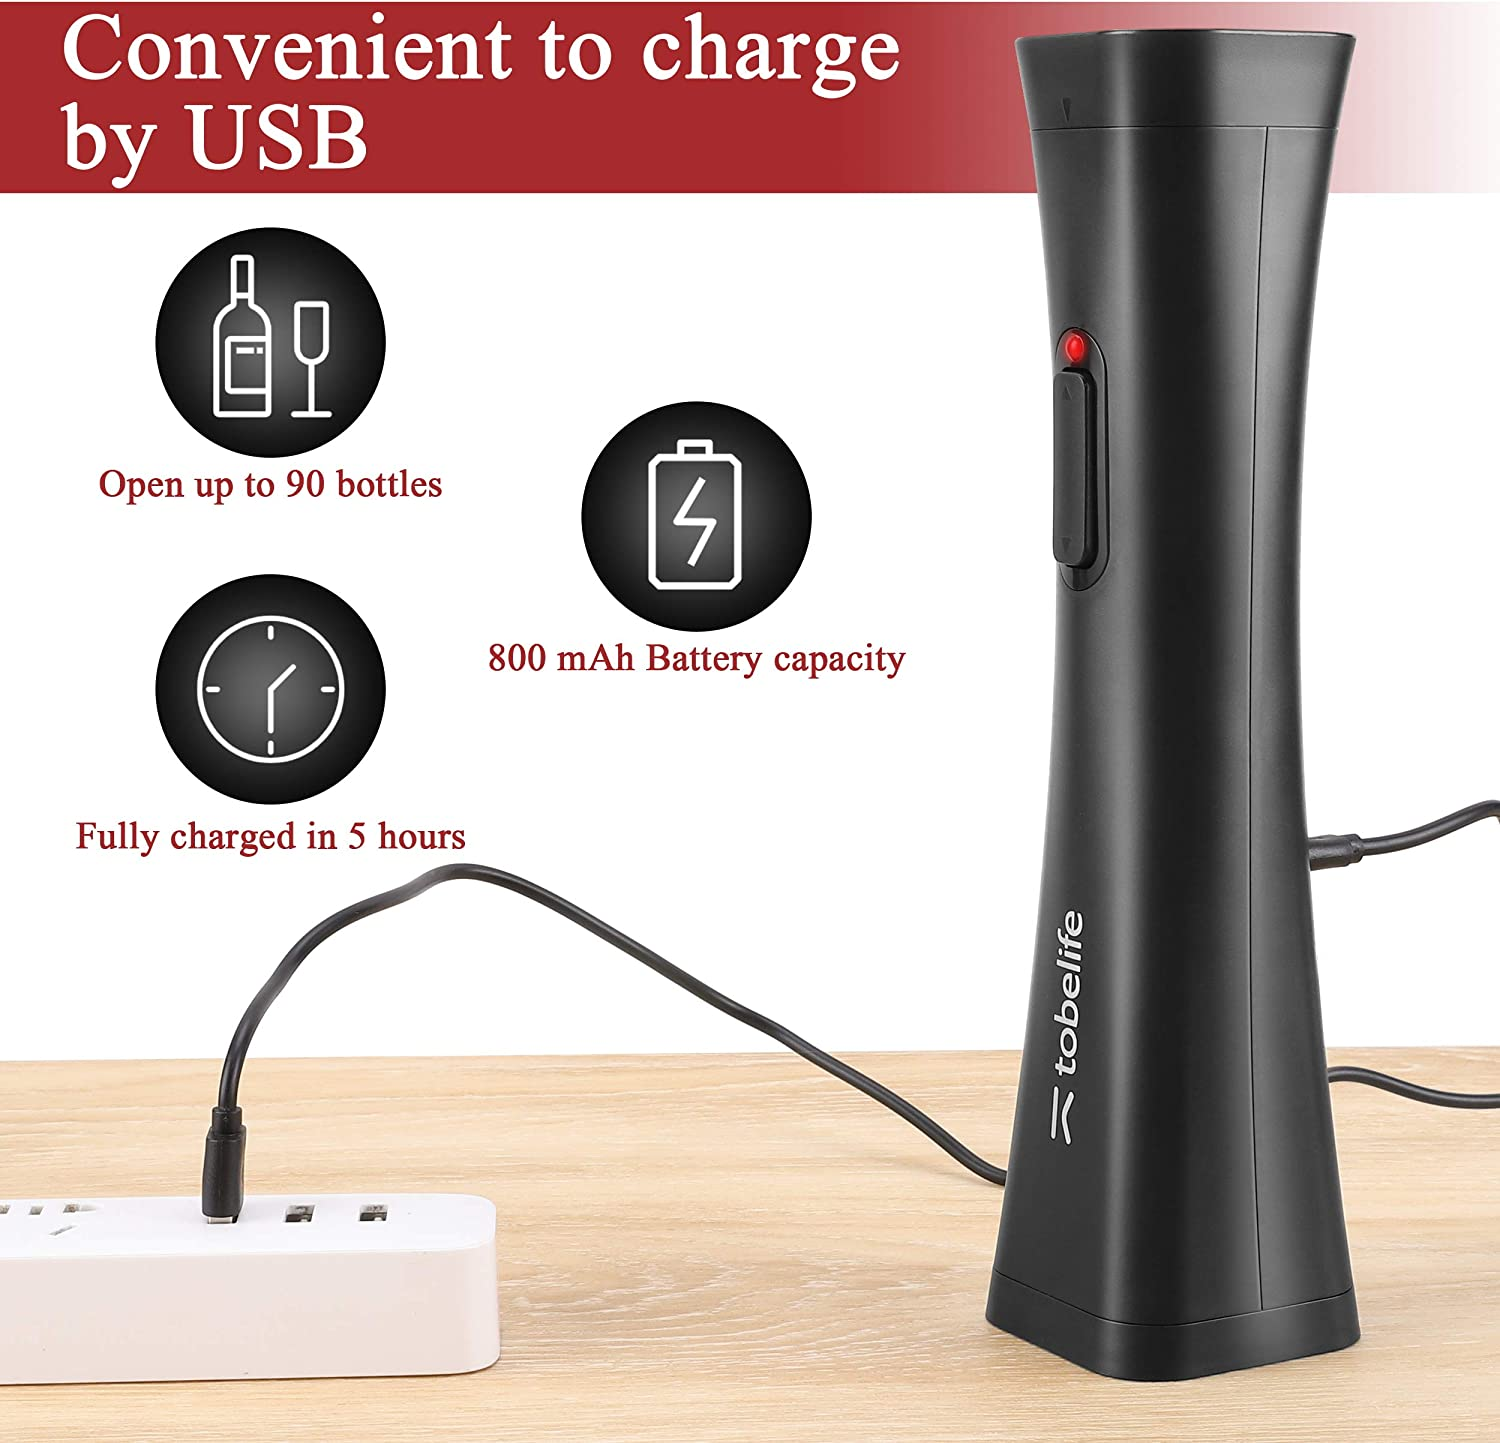 Wine Opener Kit Rechargeable Cordless Automatic Corkscrew Wine Bottle Opener Set for Party Dating The Best Gift for Wine Lovers tobelife 4-in-1 Electronic Wine Opener Black,Red Packing Box